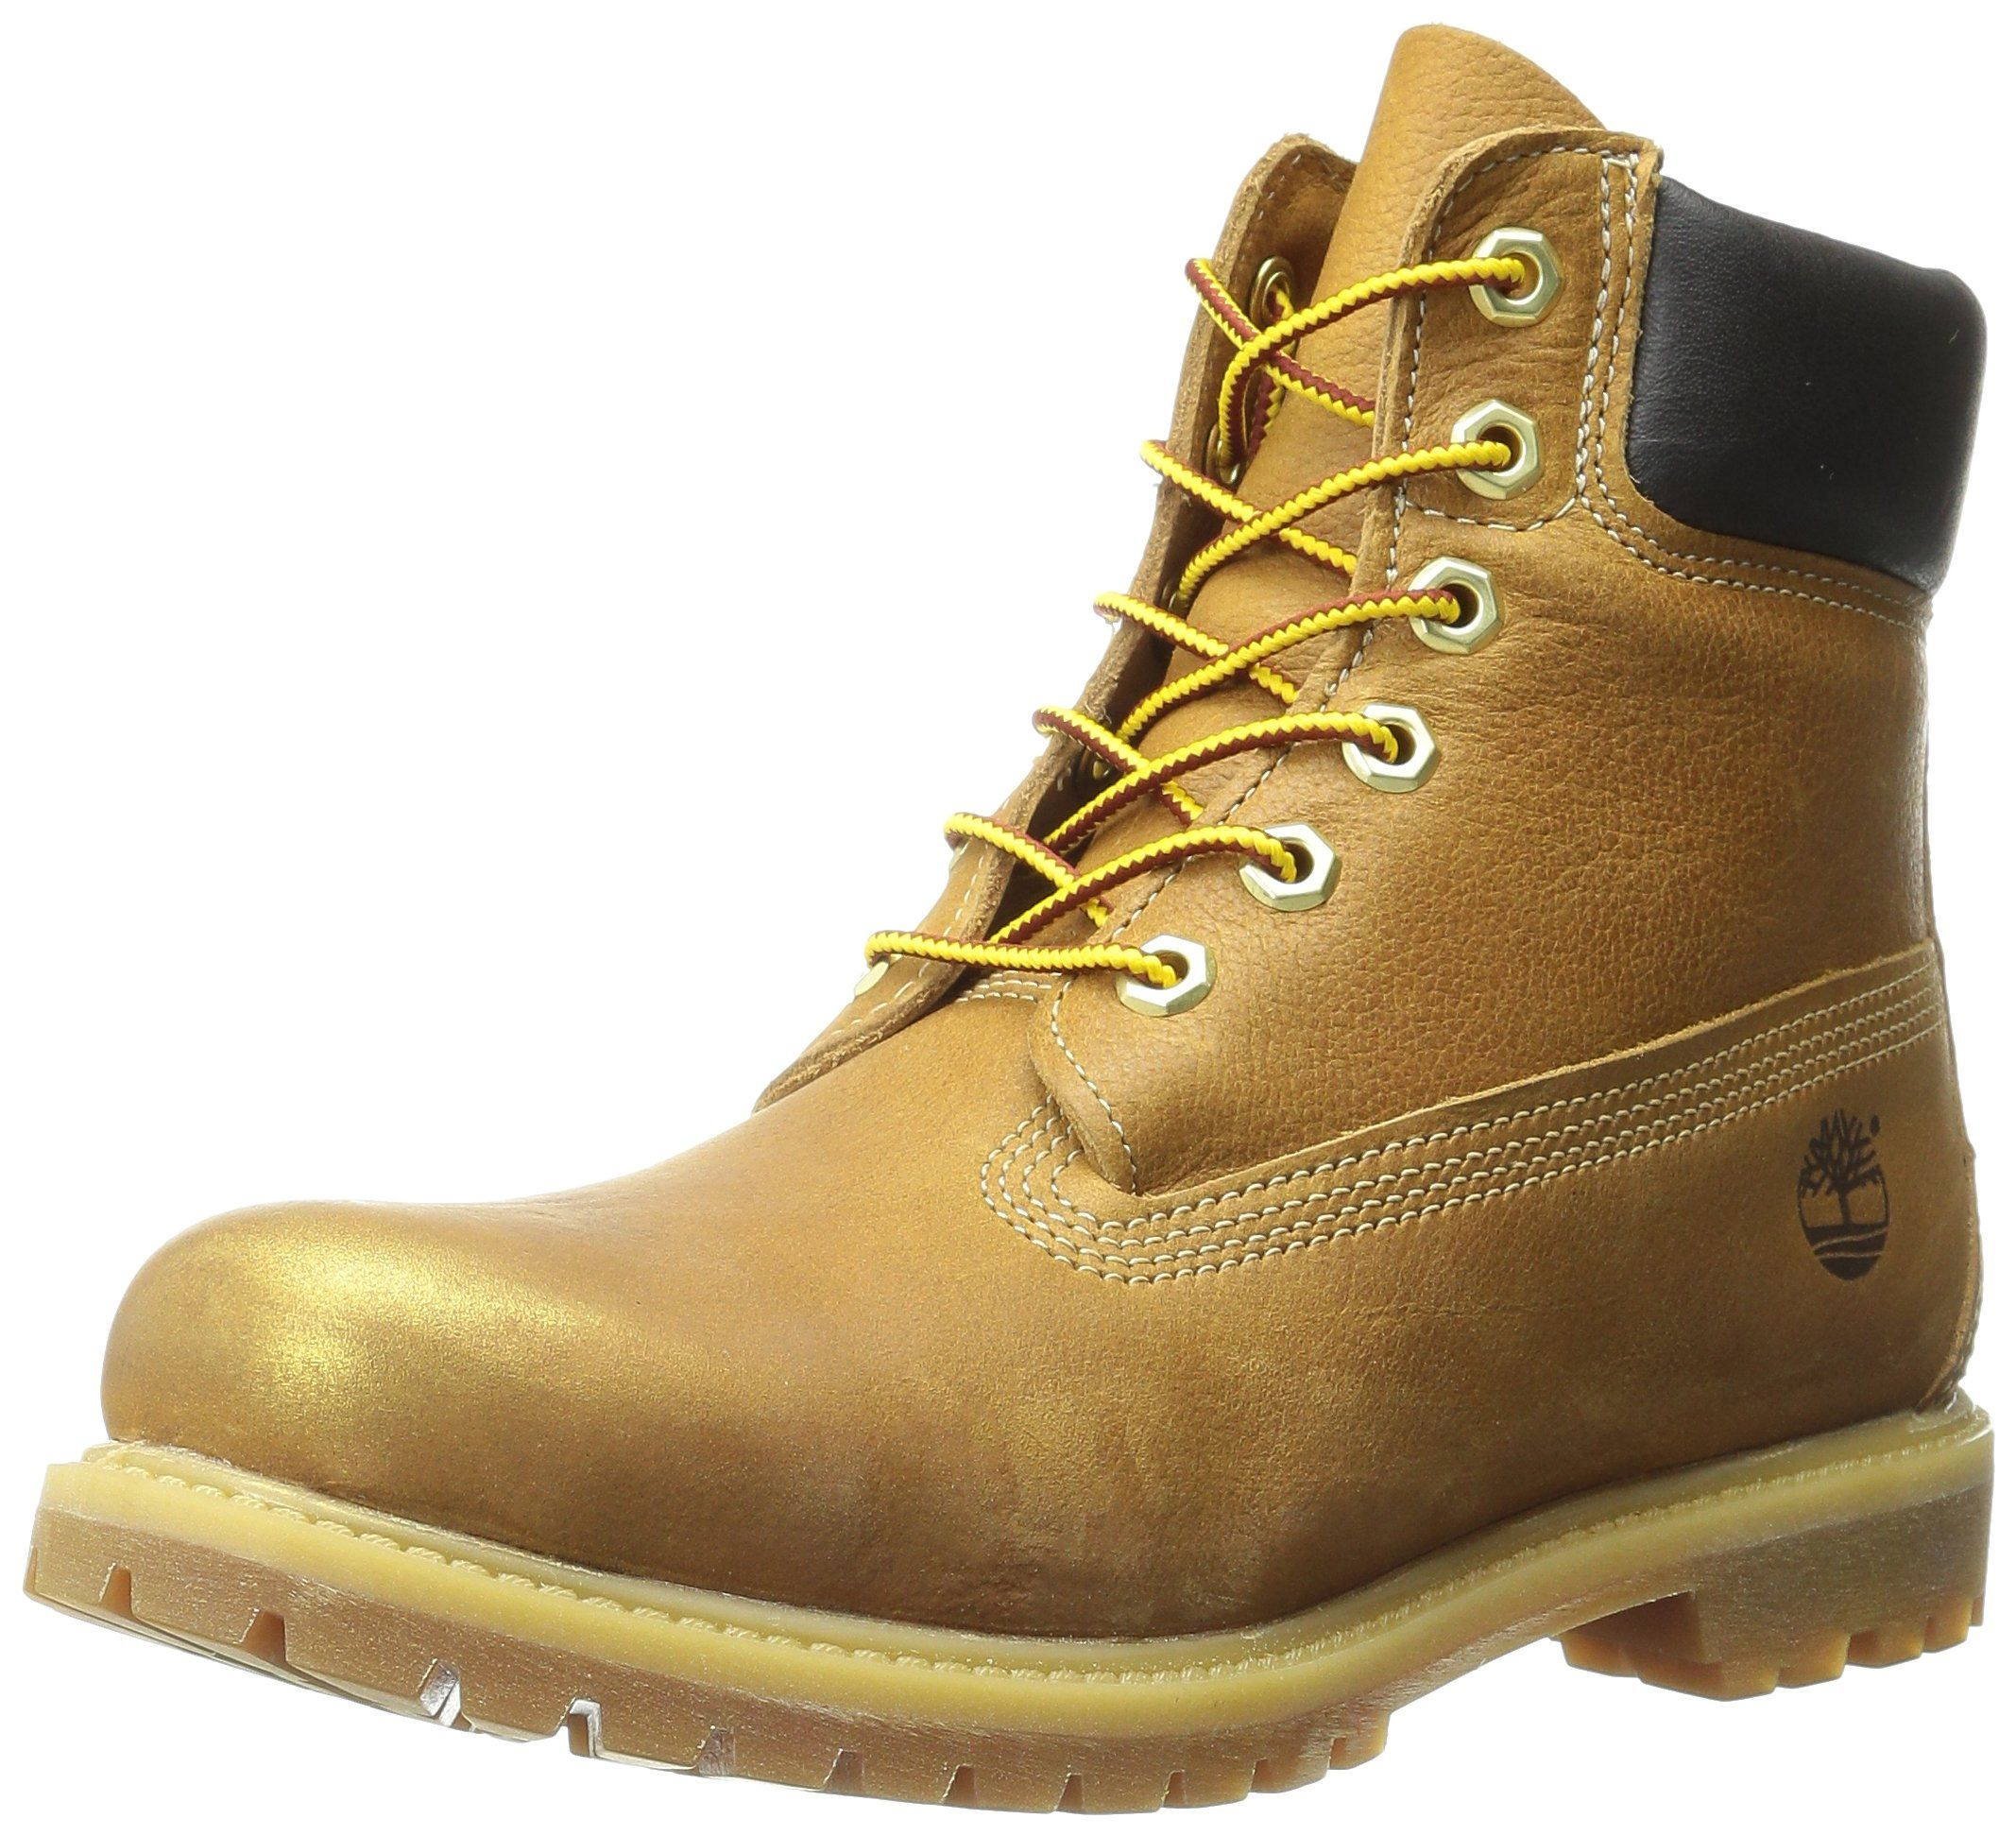 Timberland Women's 6 Inch Premium Boot, Wheat Rugged W Gold/Metallic  Finish, 6.5